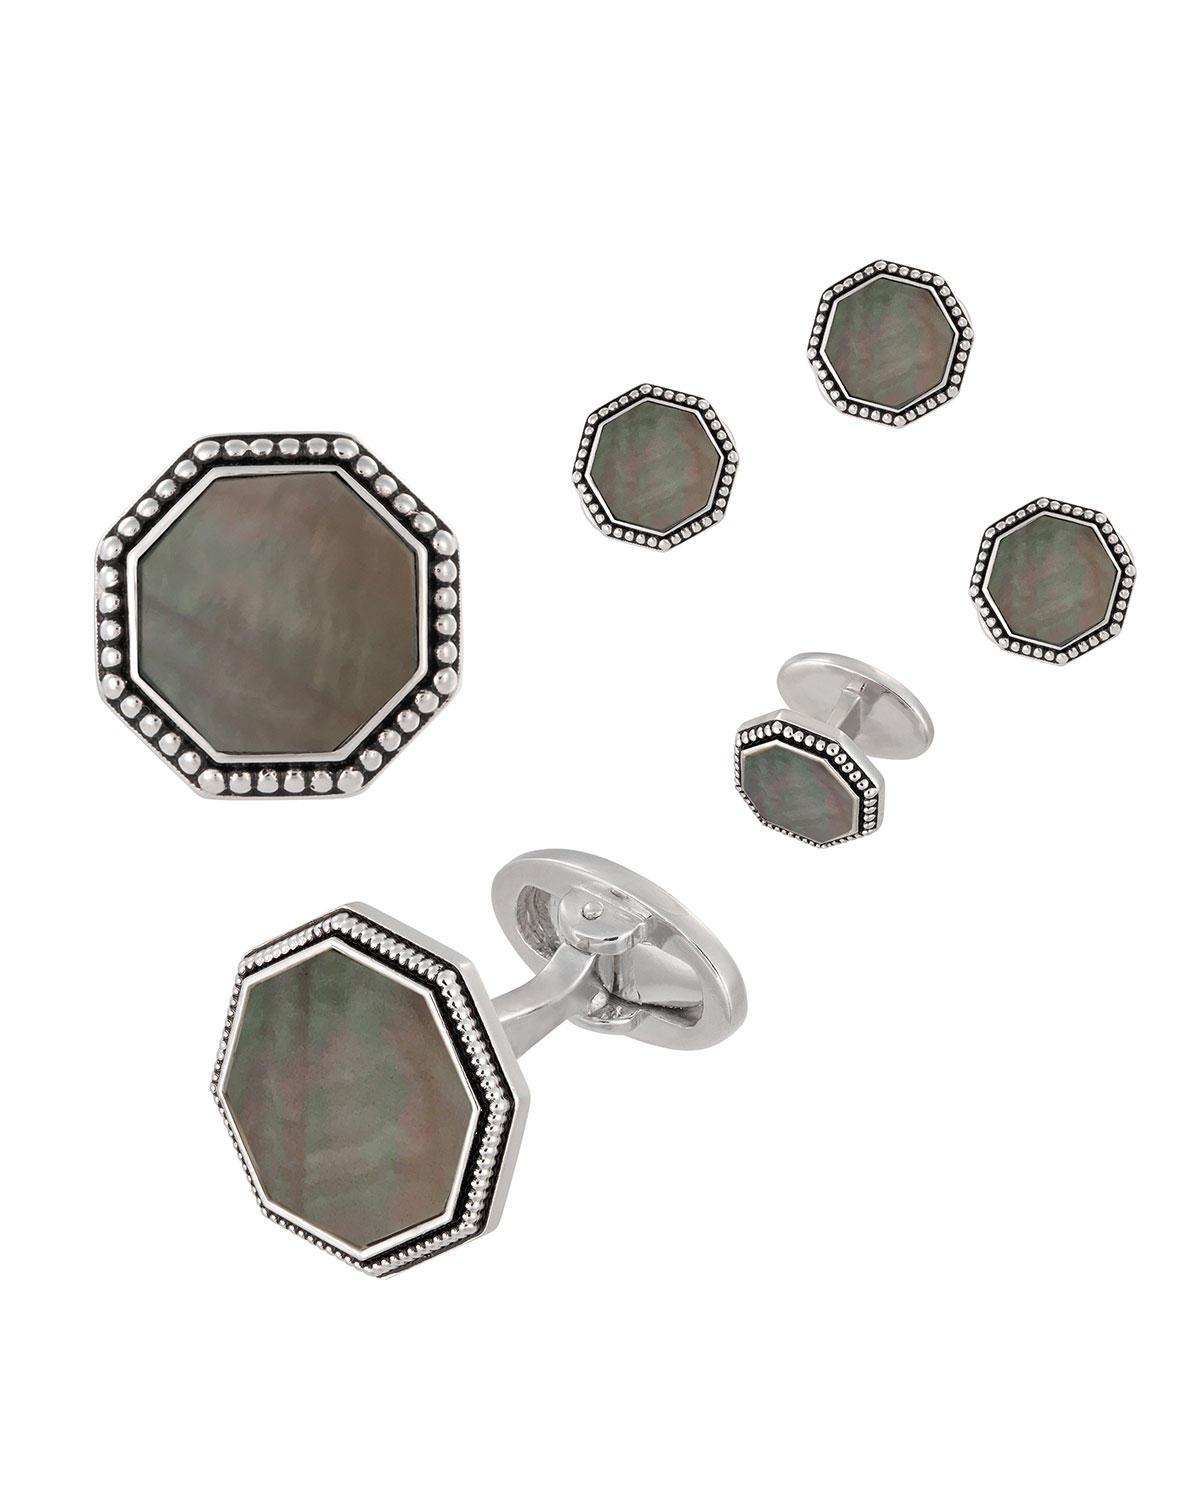 Beaded Octagonal Mother-of-Pearl Cuff Links & Studs Set